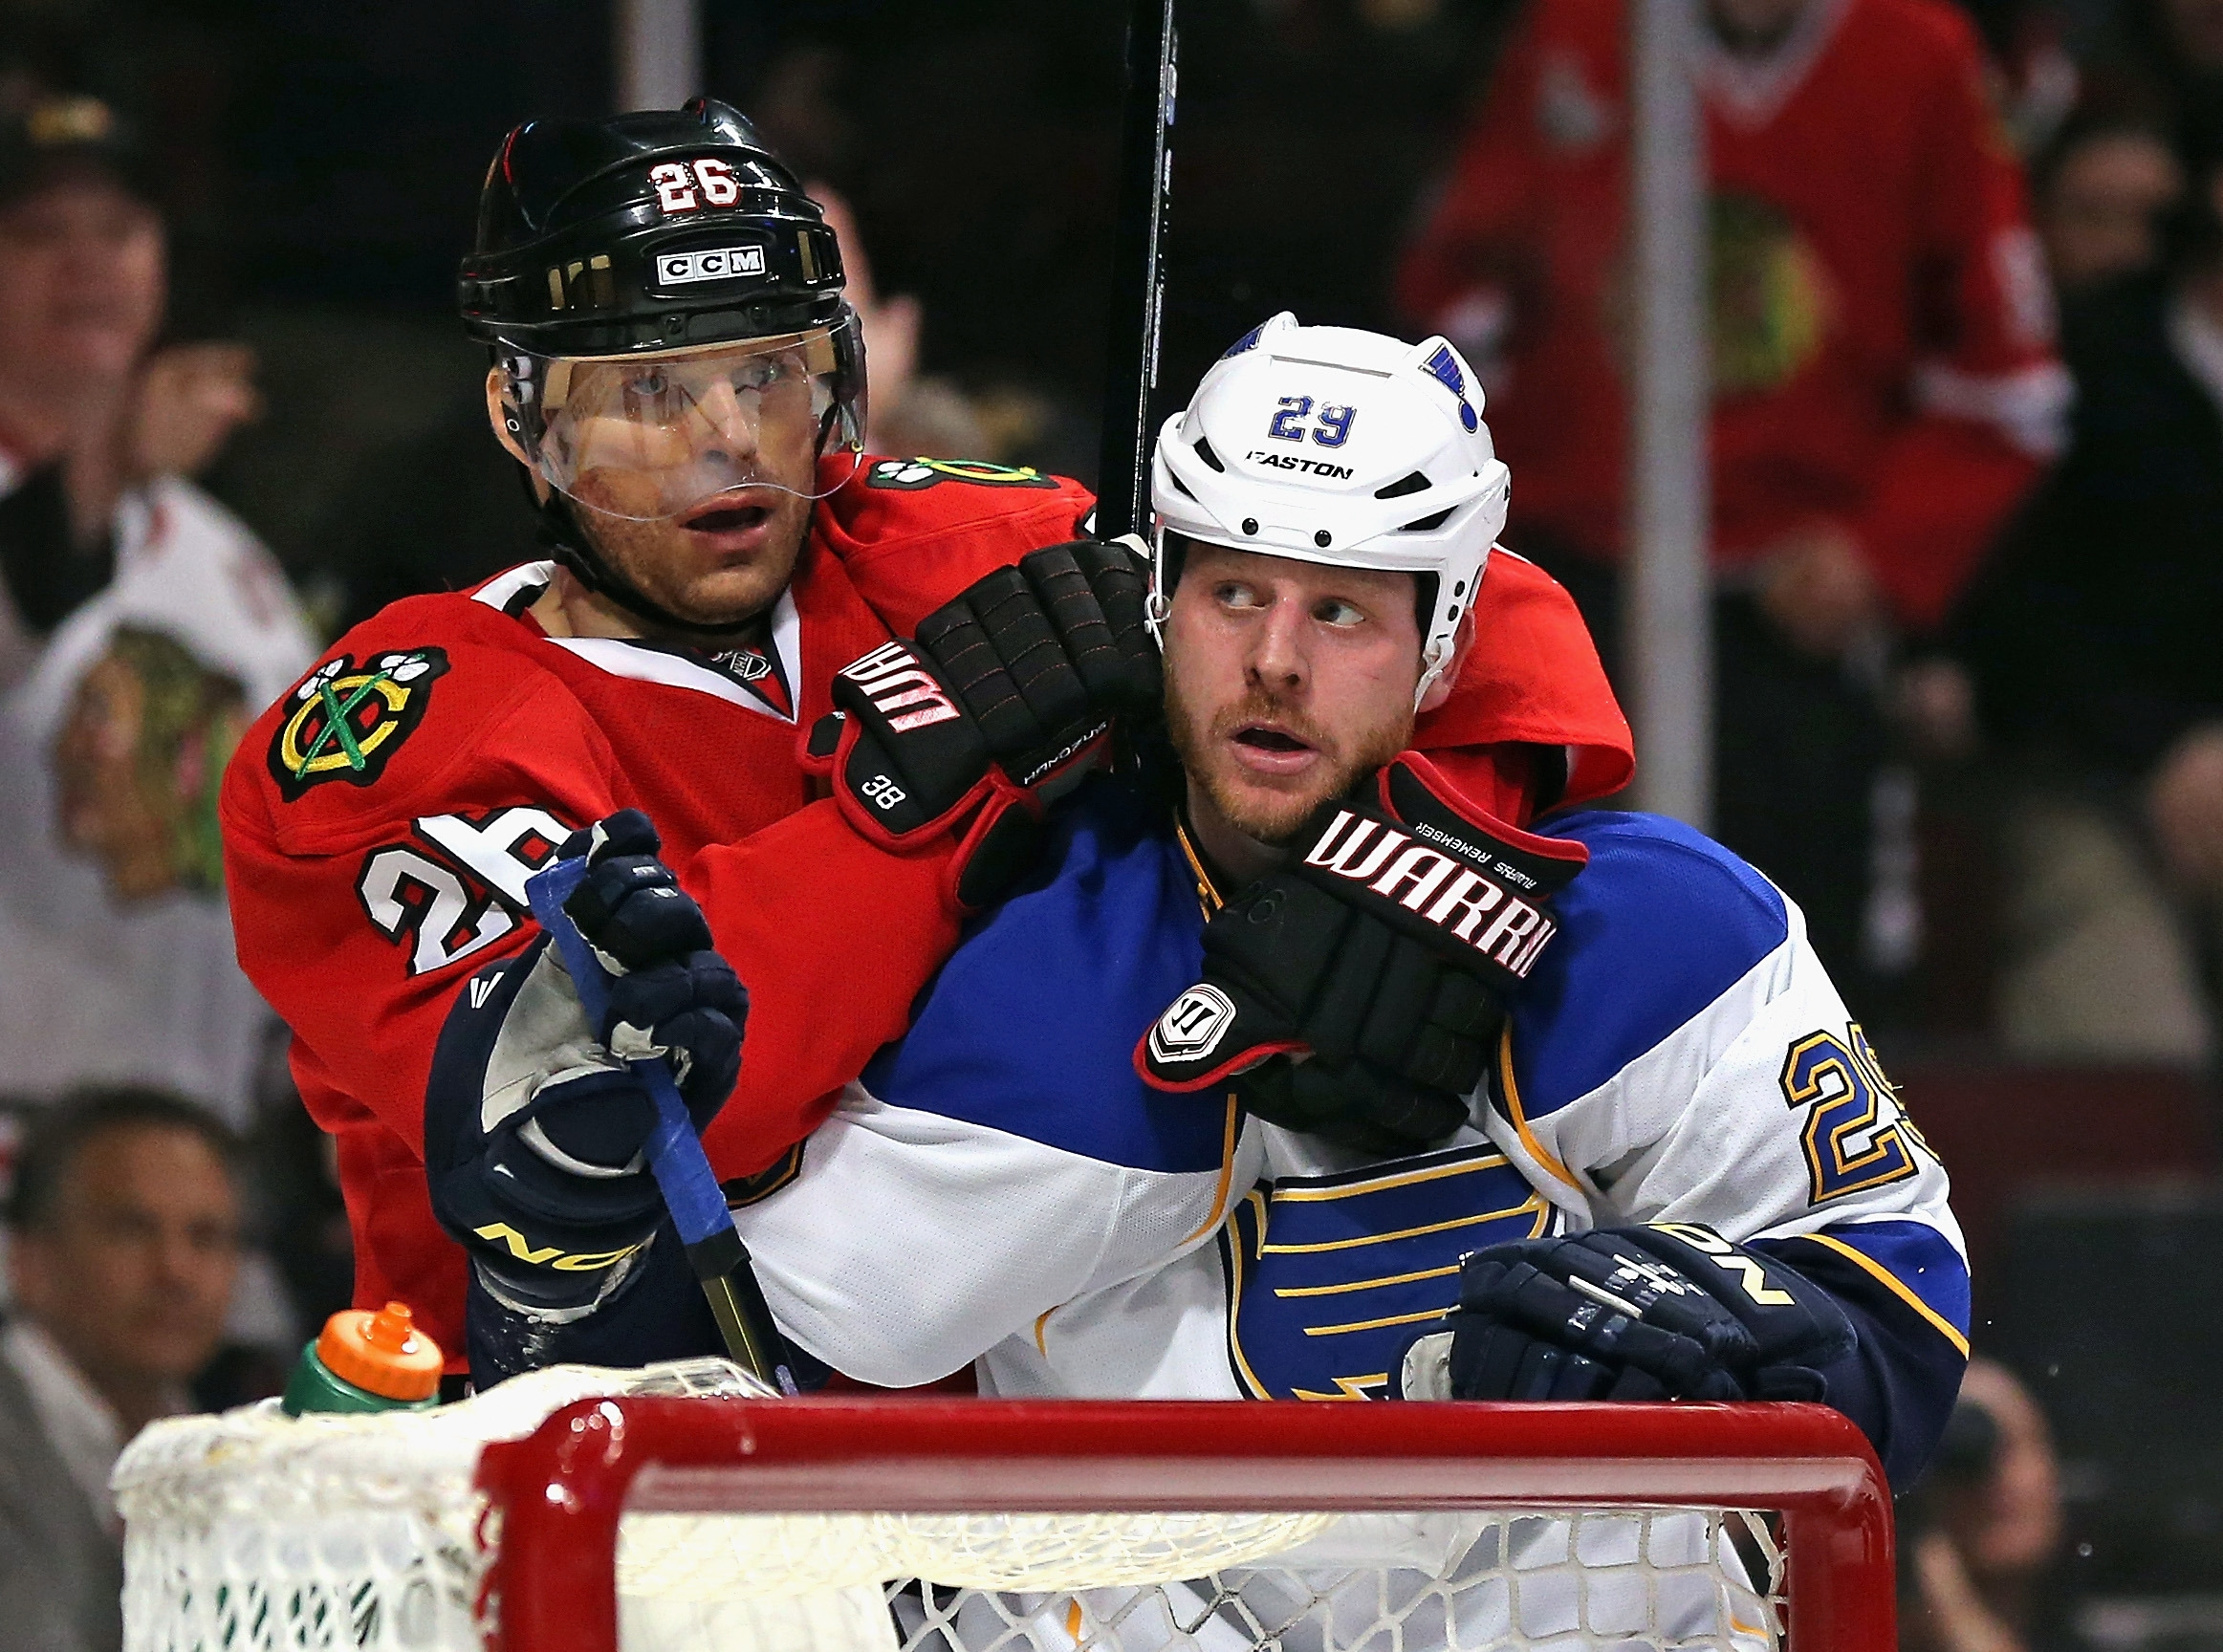 St. Louis Blues forward Steve Ott is a good fit for playoff hockey, as his team takes on the Chicago Blackhawks.